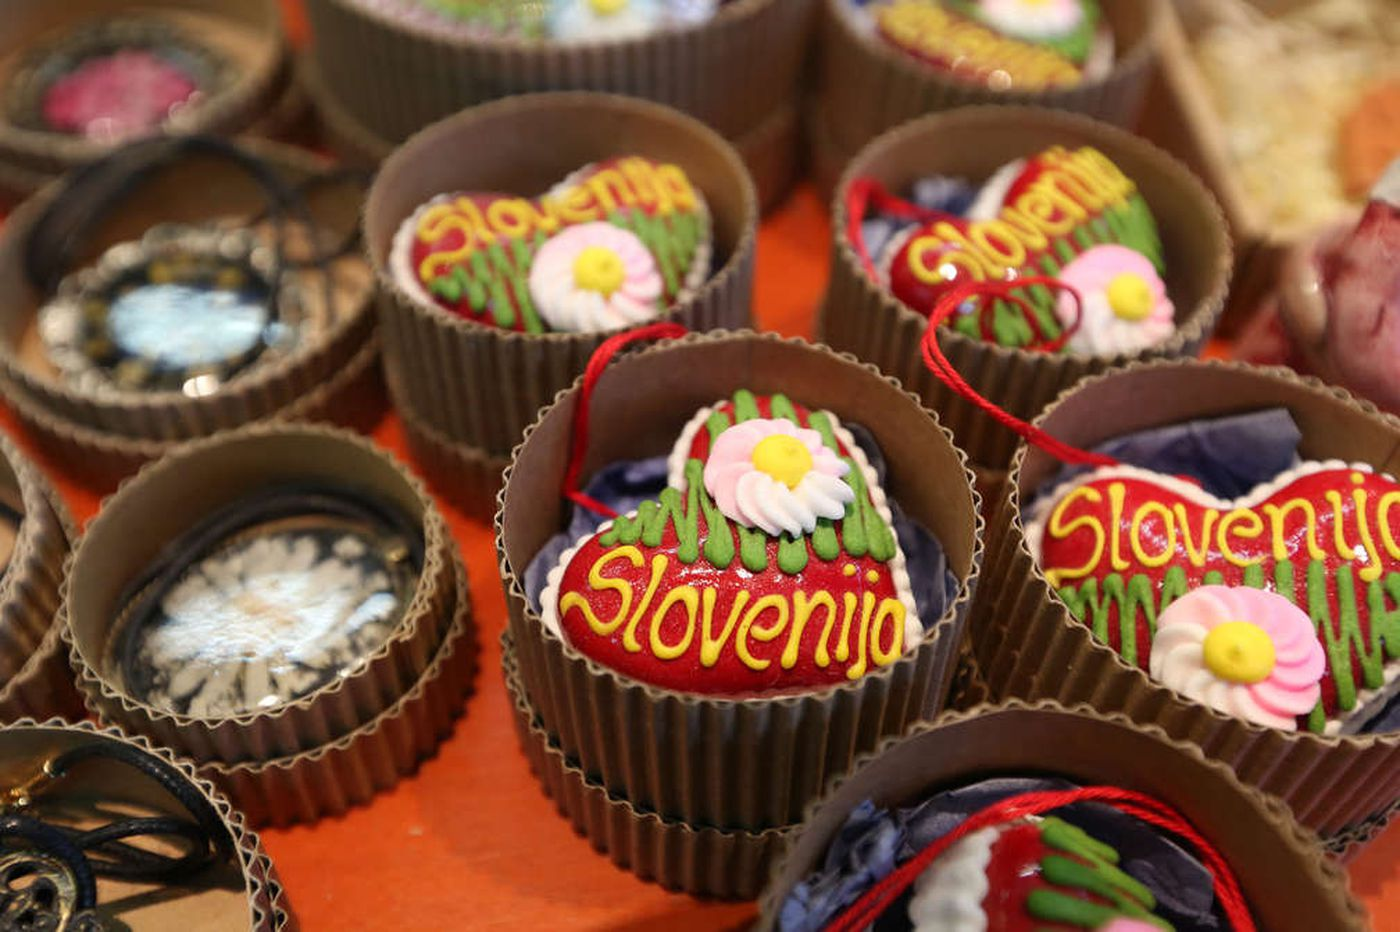 Slovenia is latest concern for European Union ministers